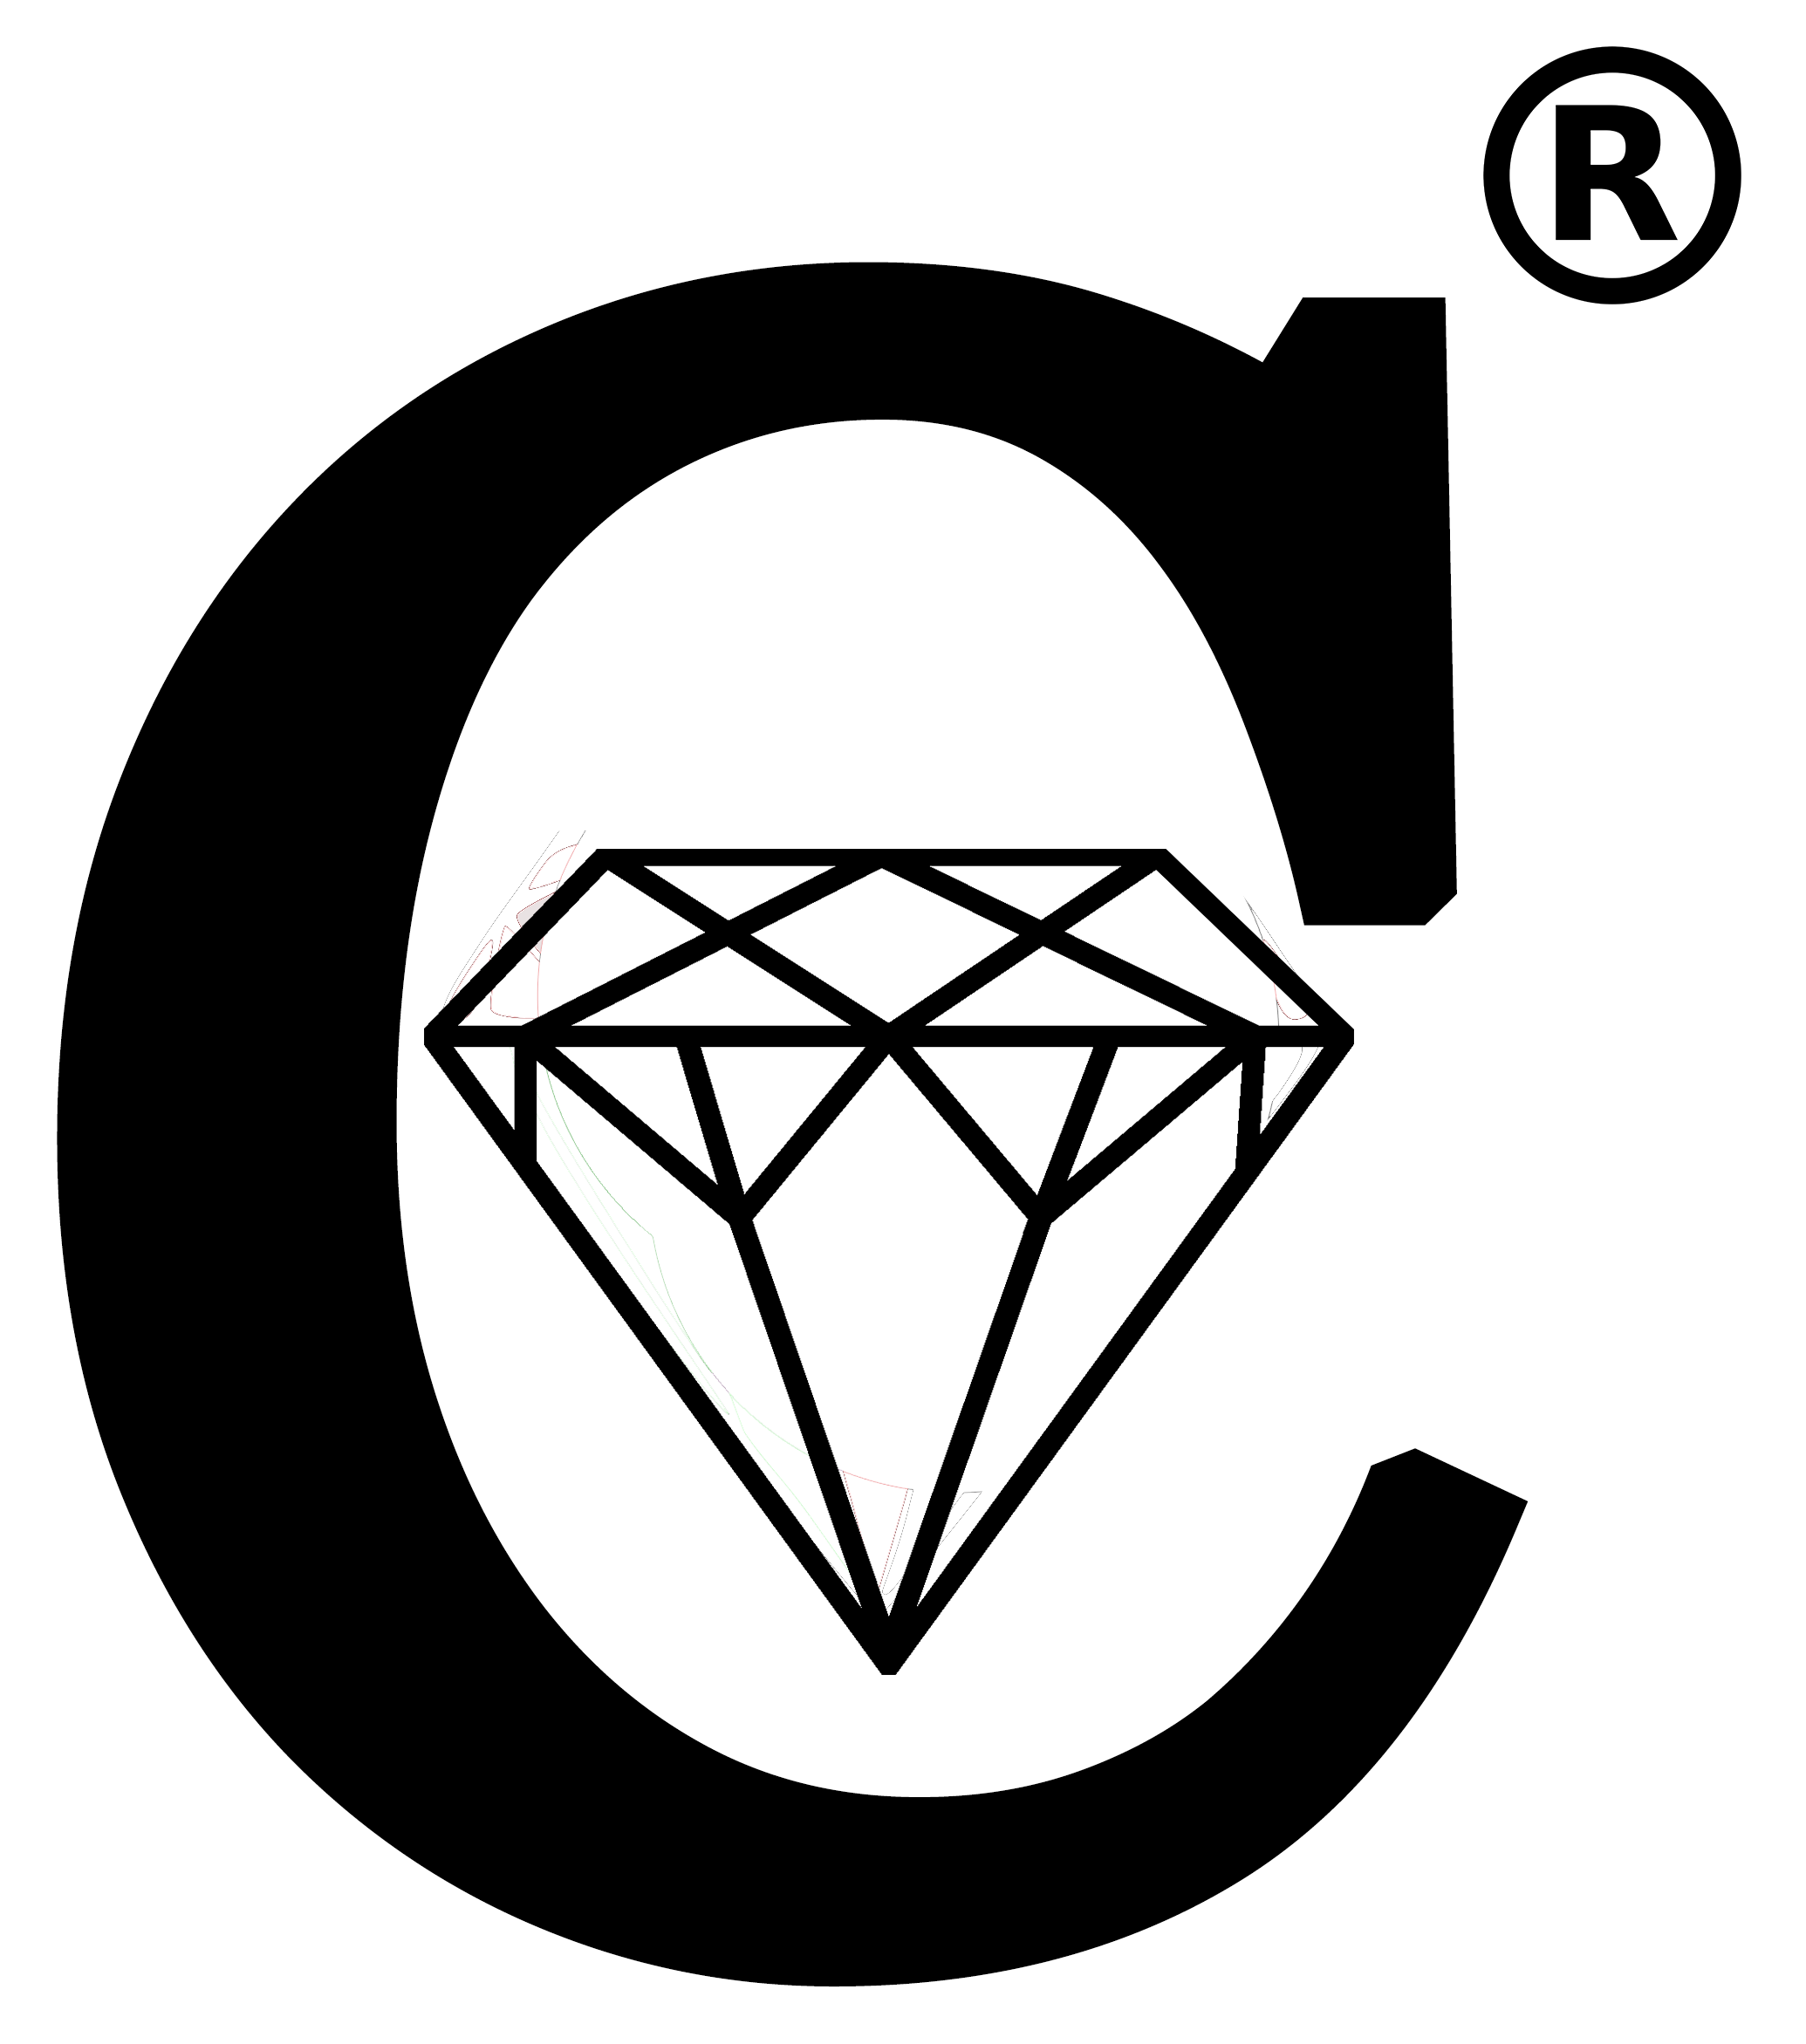 Carat logo download free clipart with a transparent.